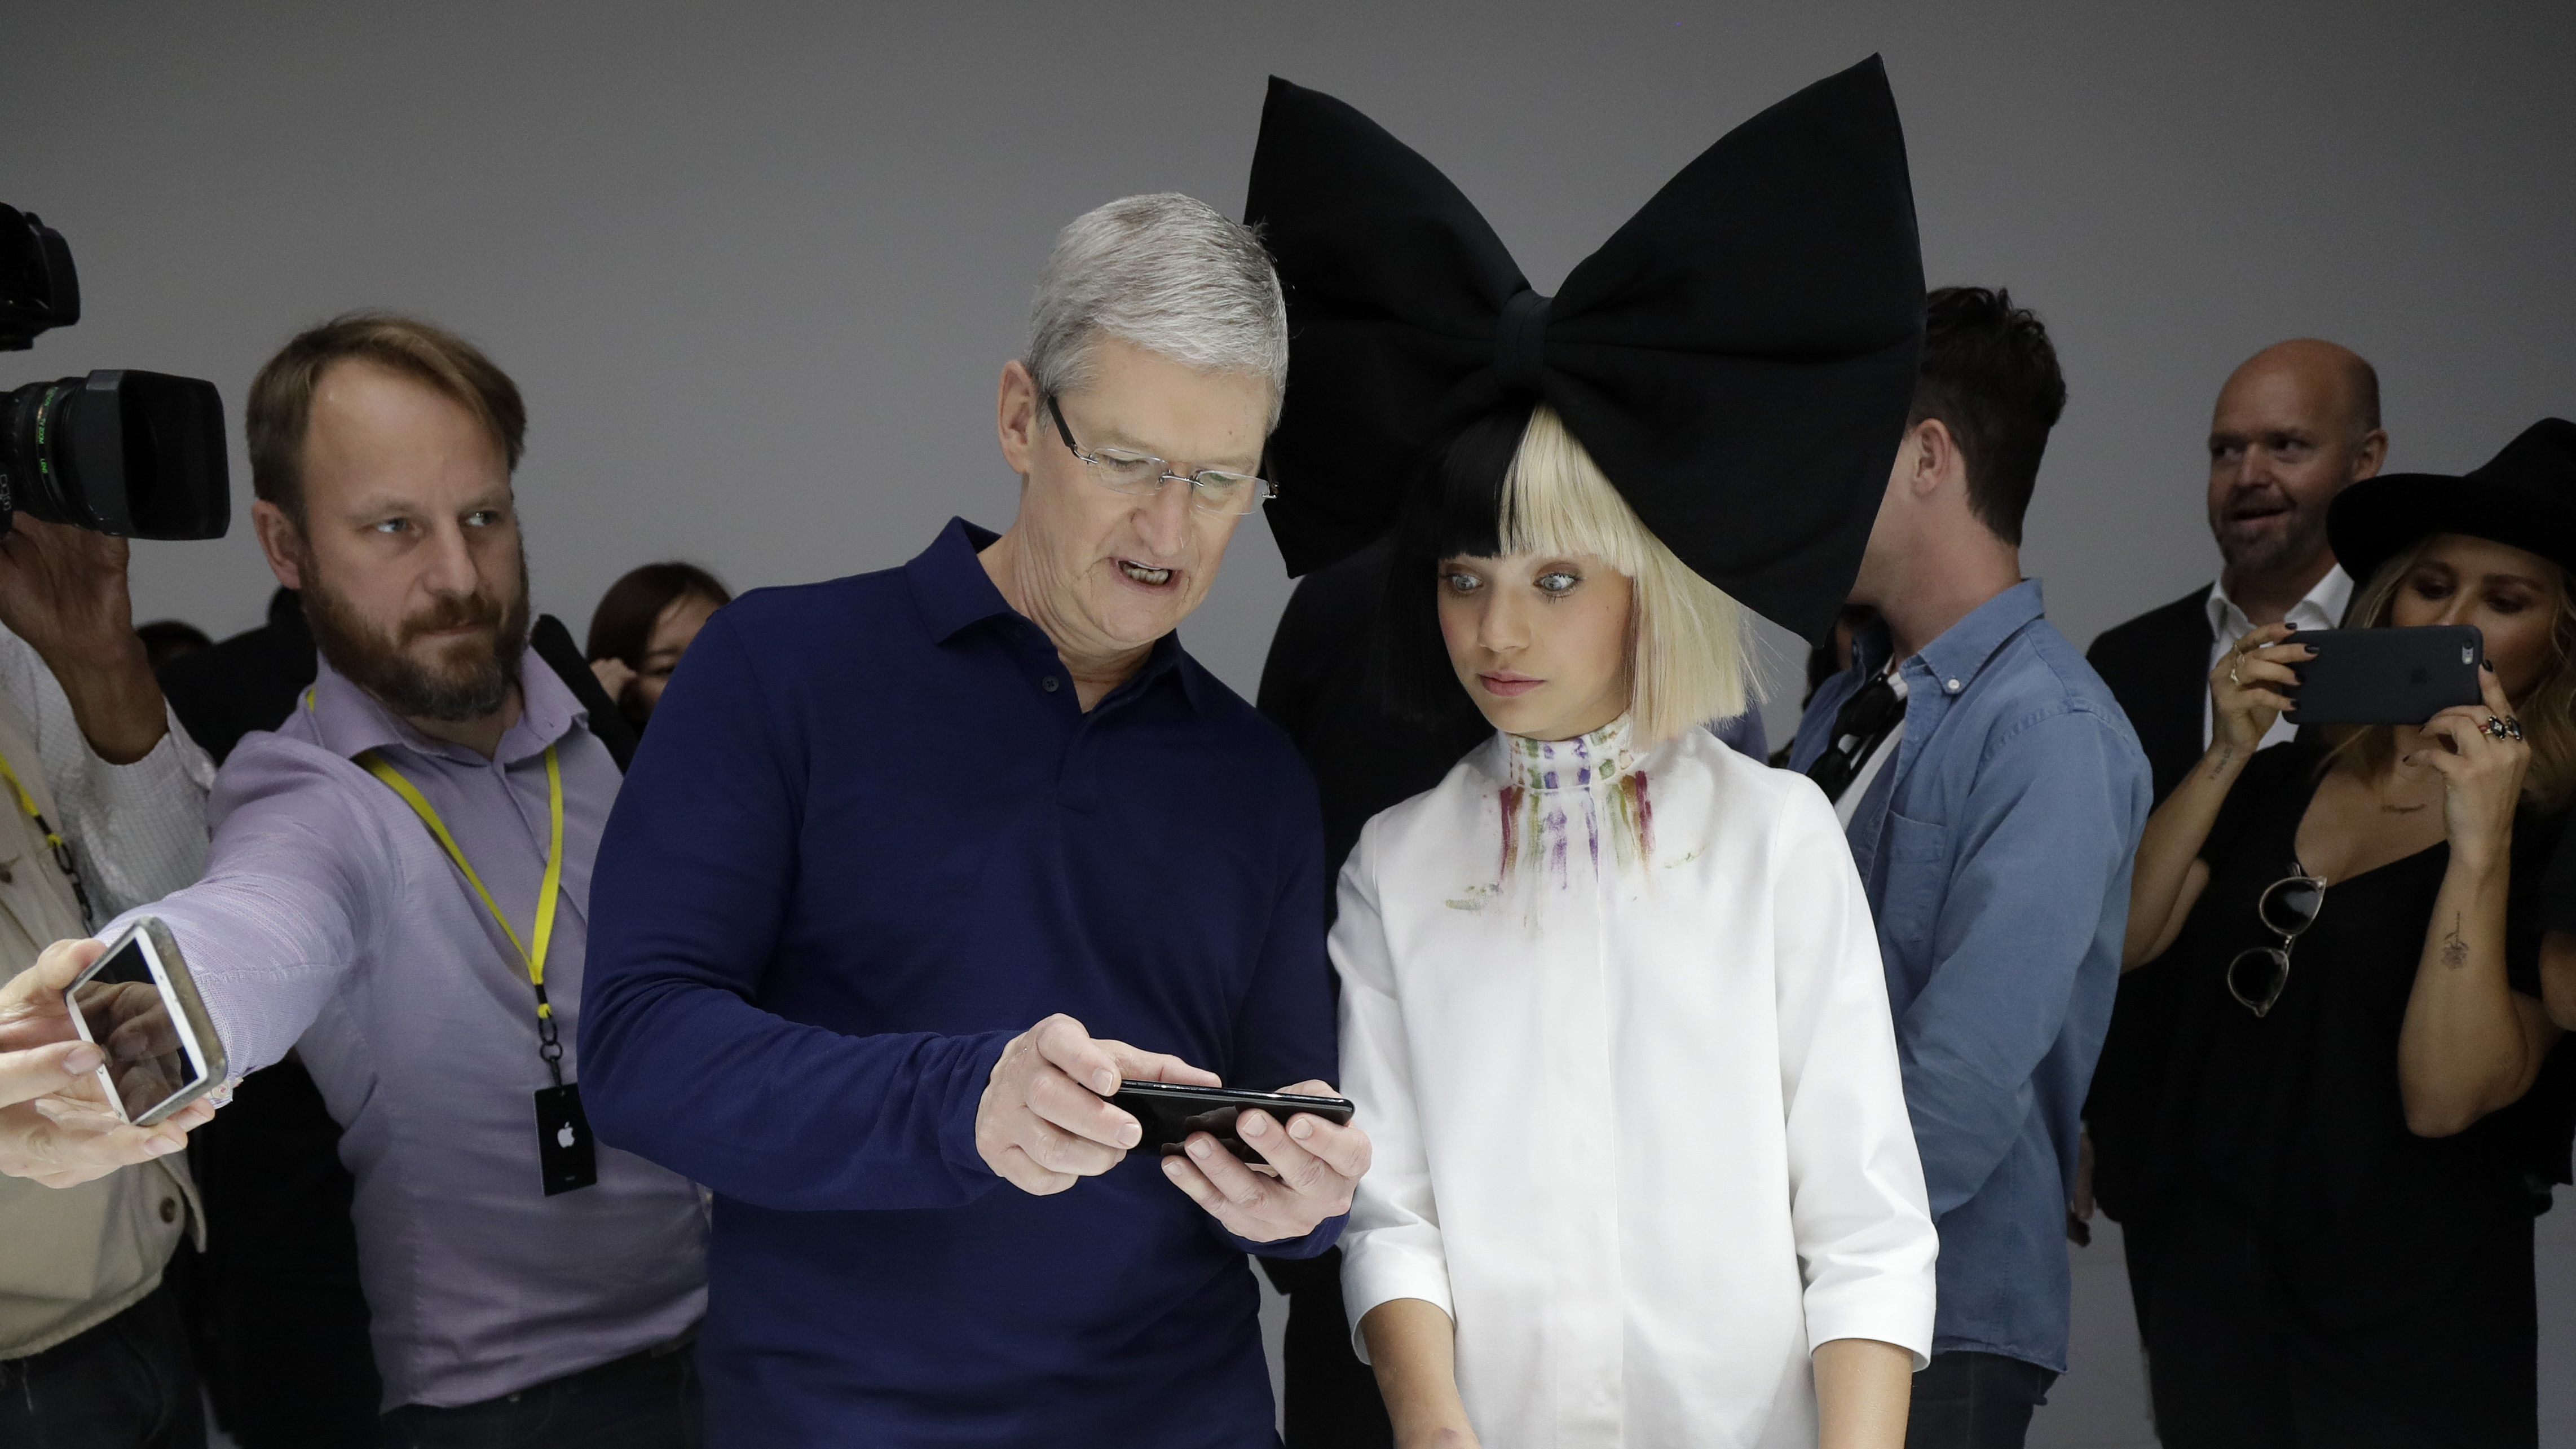 Apple CEO Tim Cook shows an iPhone 7 to performer Maddie Ziegler during an event to announce new products, Wednesday, Sept. 7, 2016, in San Francisco. (AP Photo/Marcio Jose Sanchez)